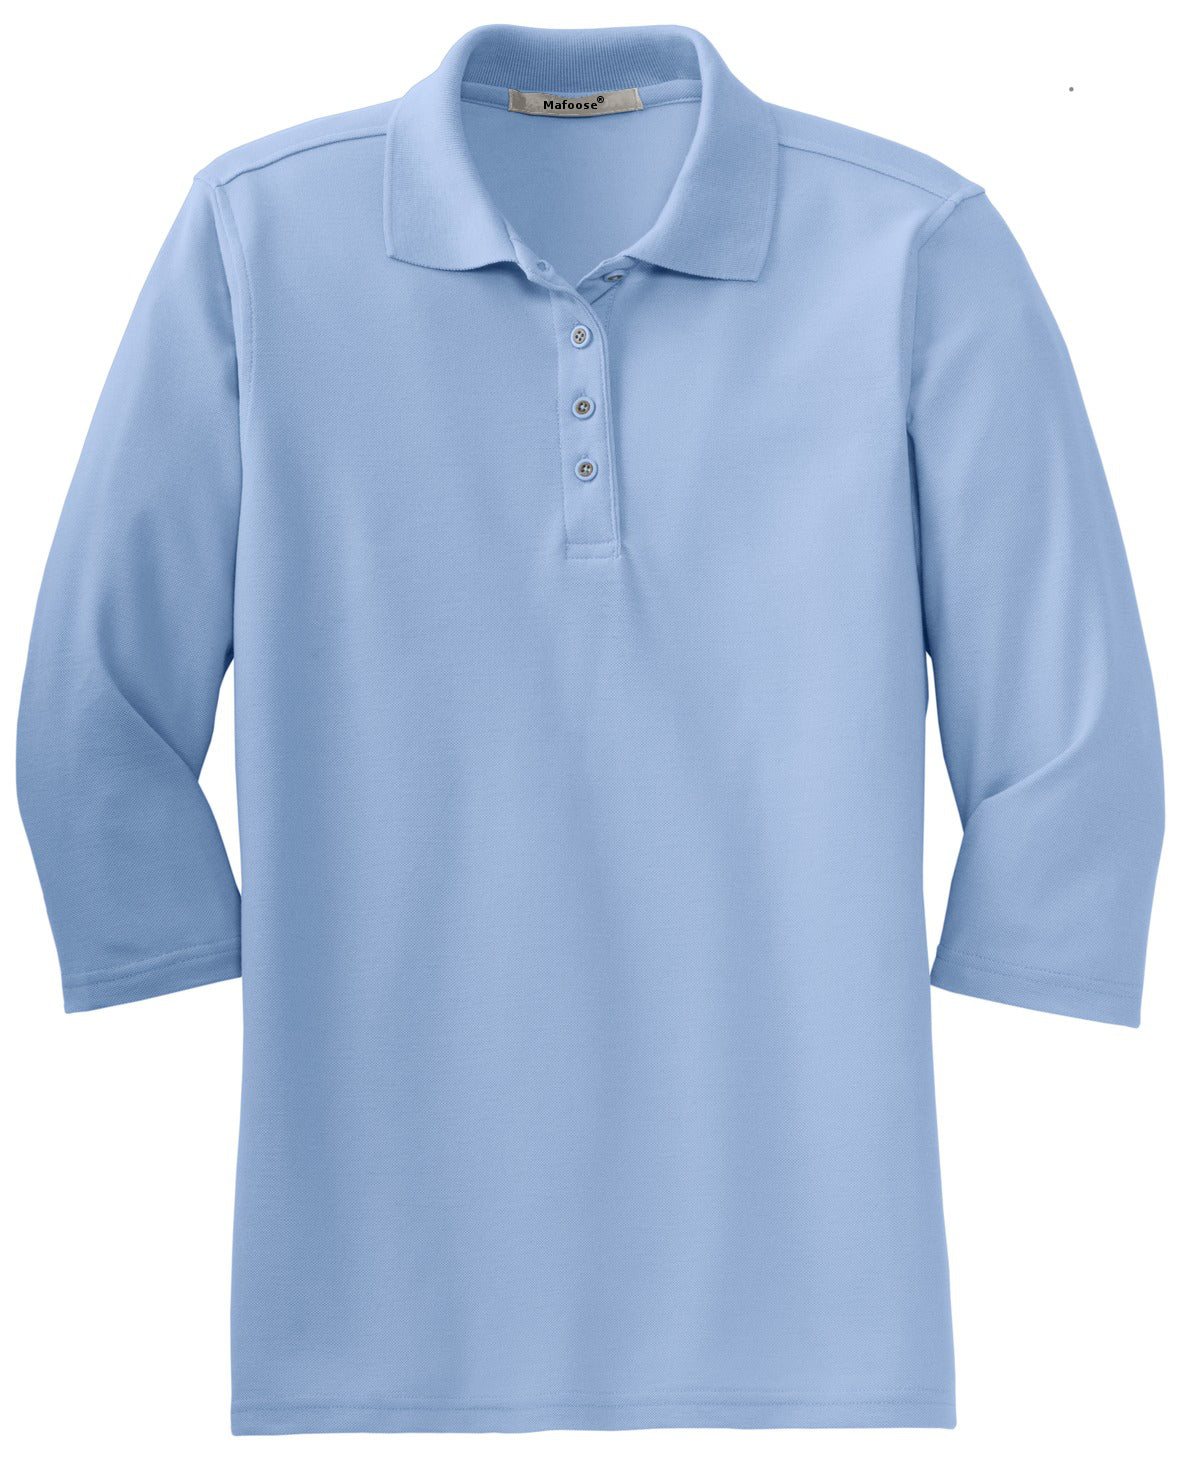 Mafoose Women's Silk Touch ¾ Sleeve Polo Shirt Light Blue-Front